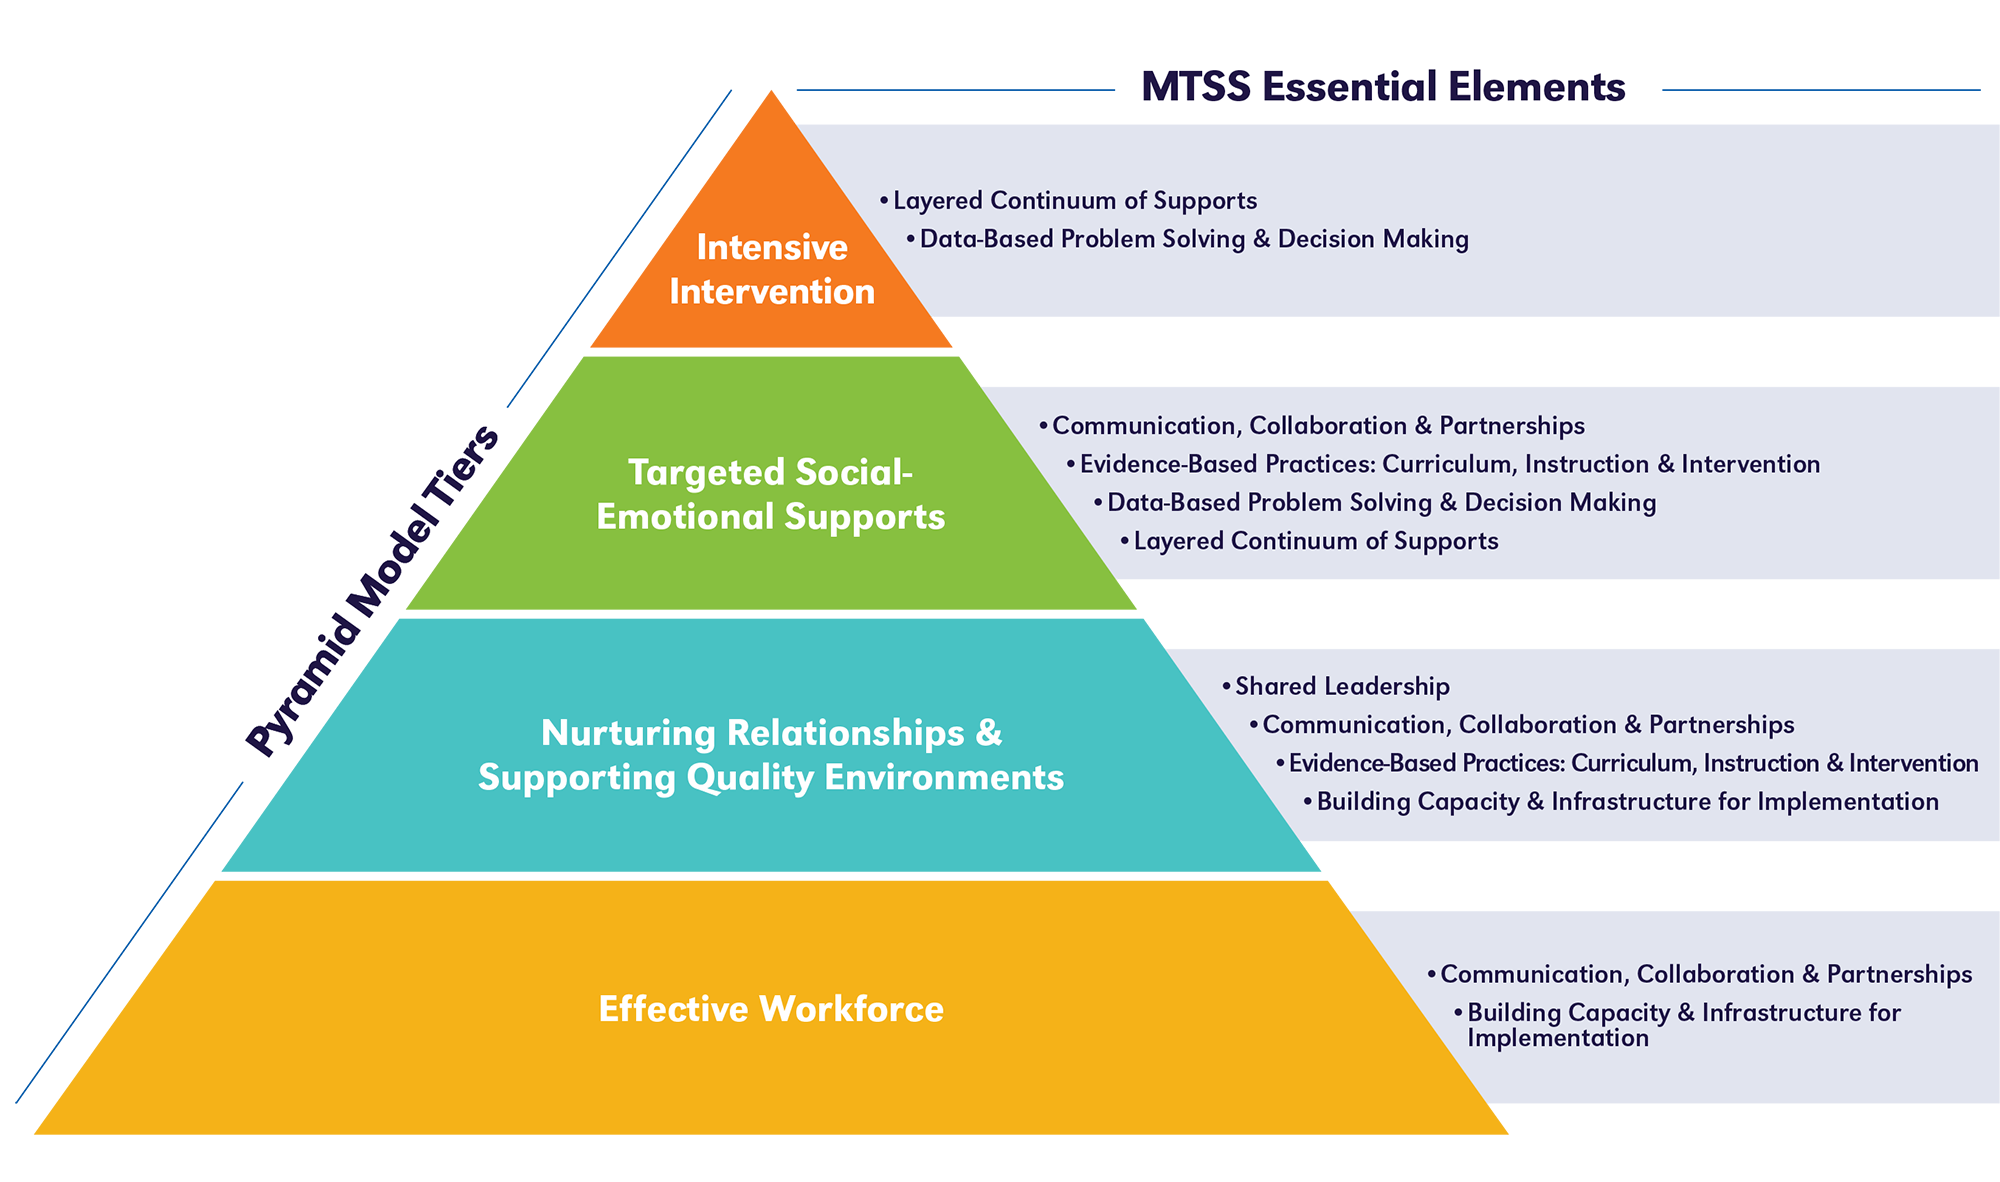 pyramid graphic with the related MTSS essential elements